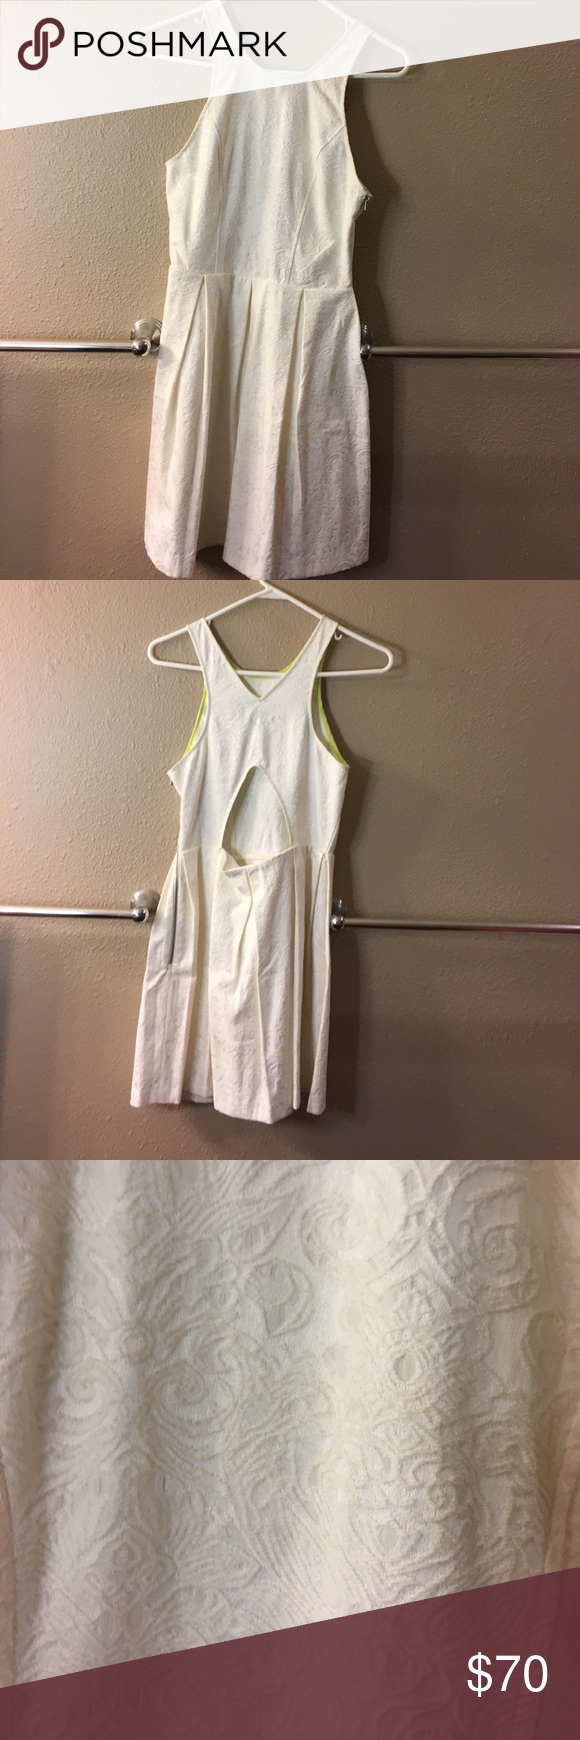 Dolce Vita fit n flare dress Cute cut out in the back and beautiful material! Only worn once so great condition Dolce Vita Dresses Mini